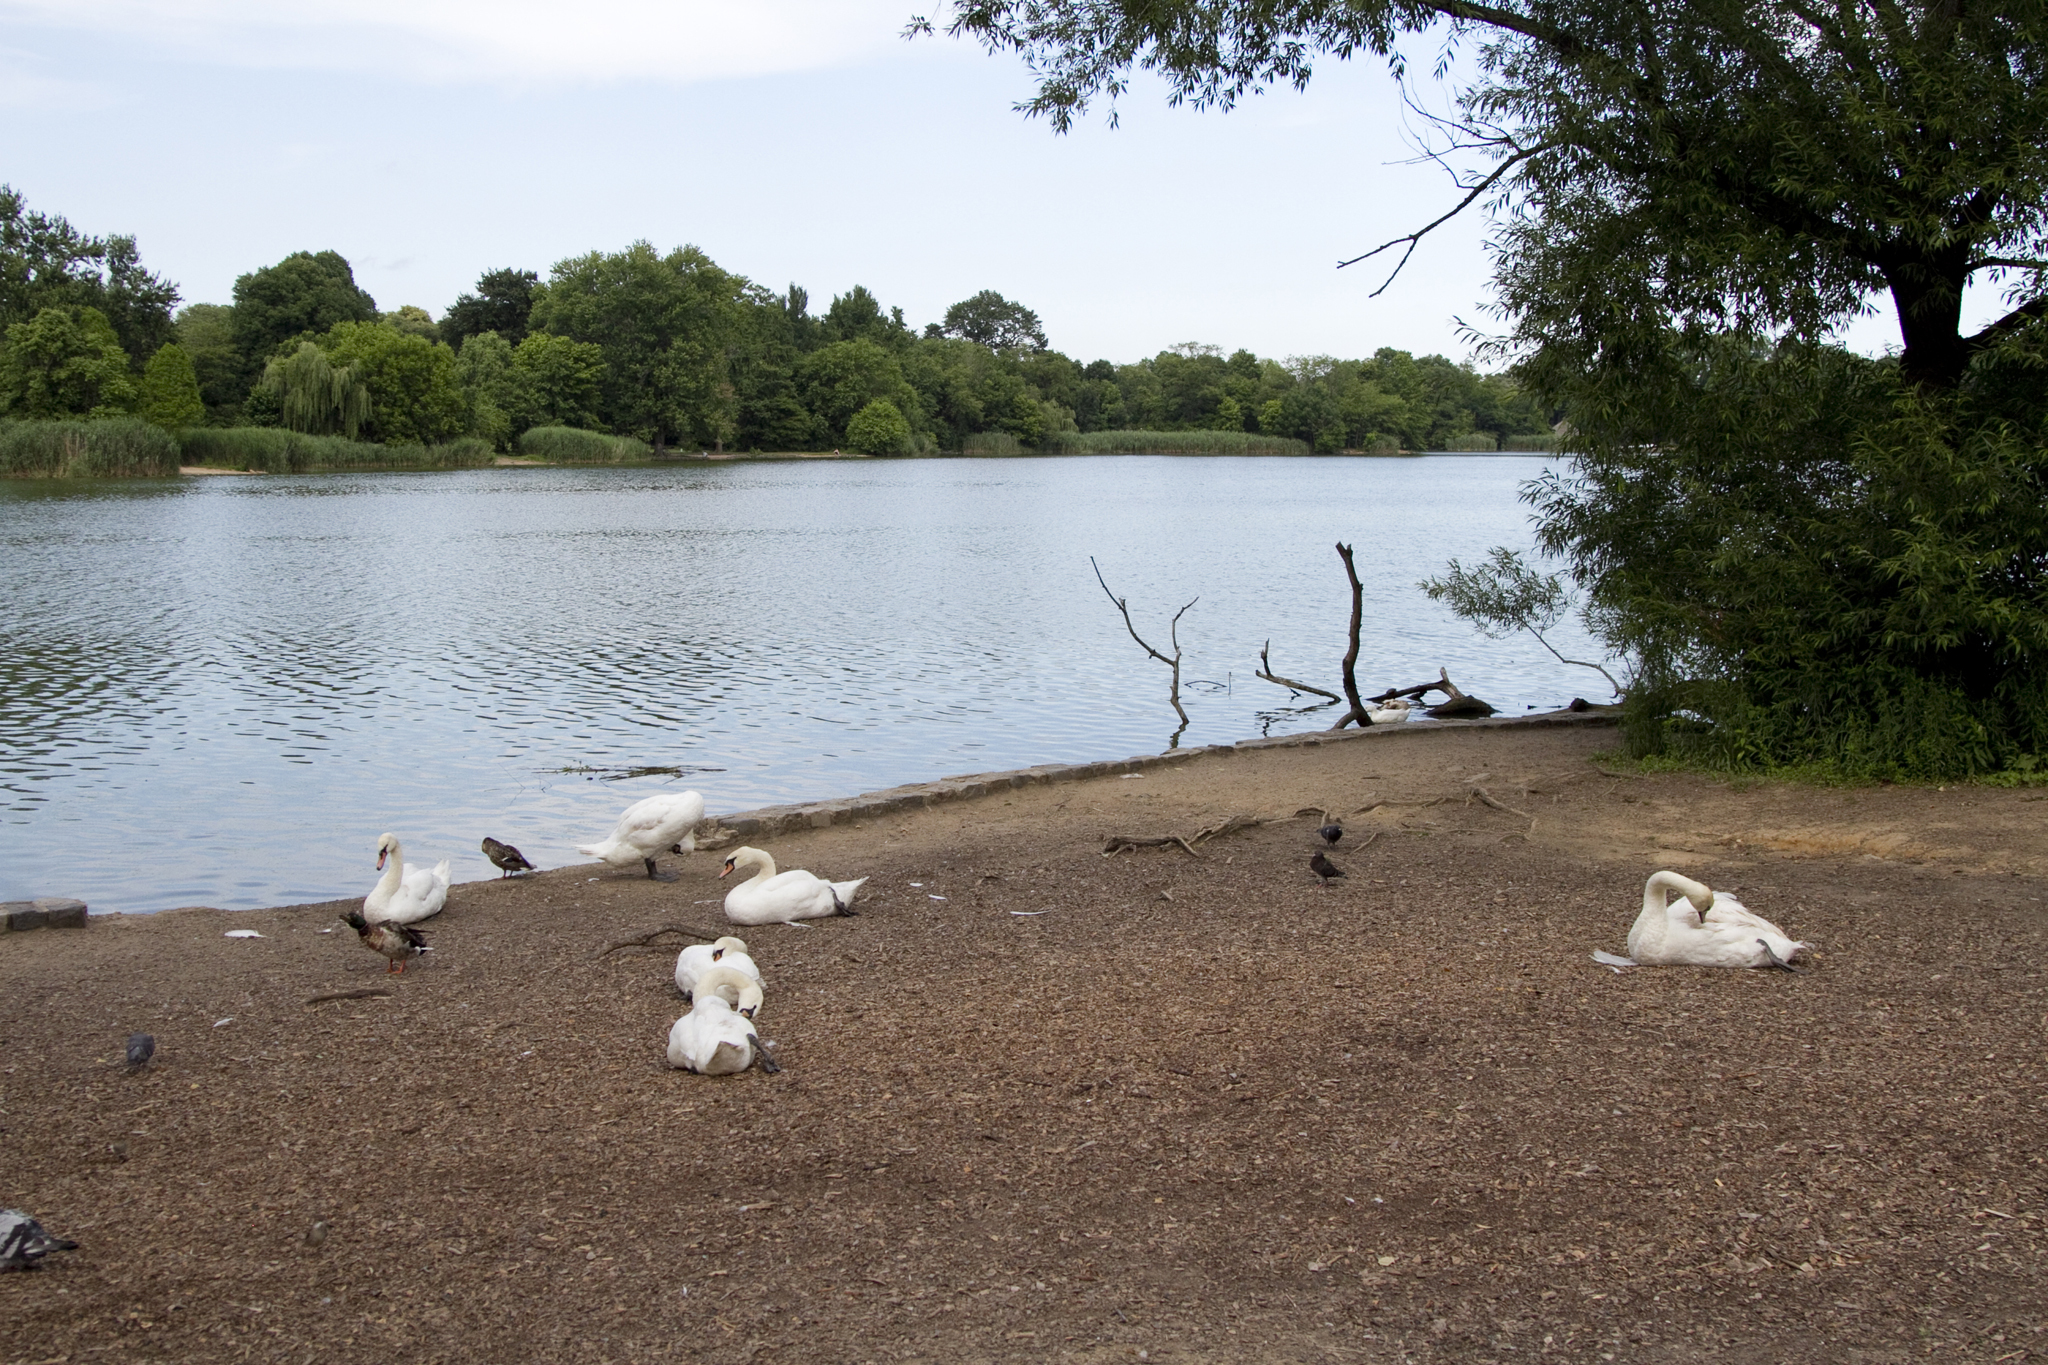 1883, 1895: Suicides by the lake, Prospect Park